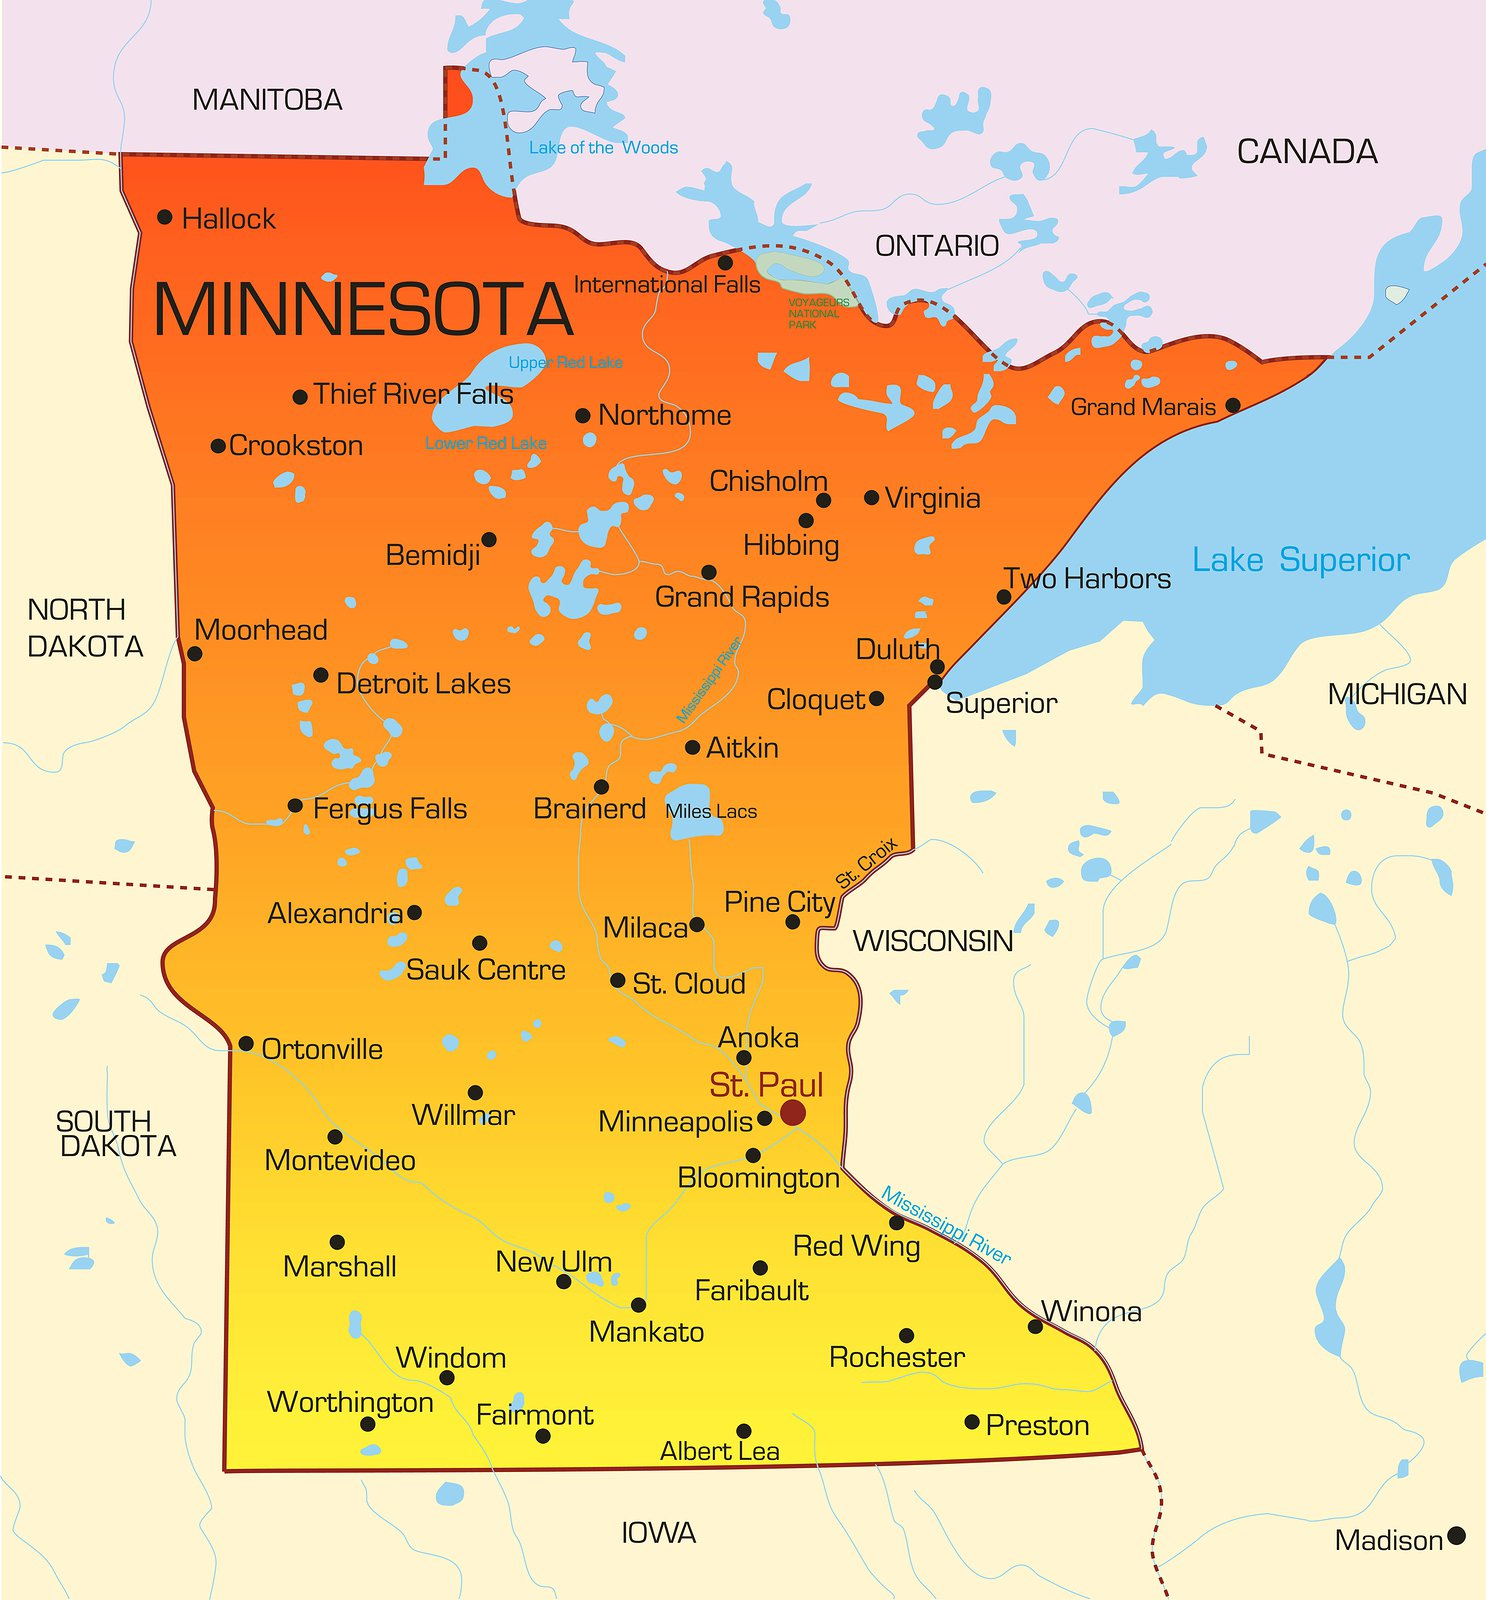 Minnesota RN Requirements and Training Programs